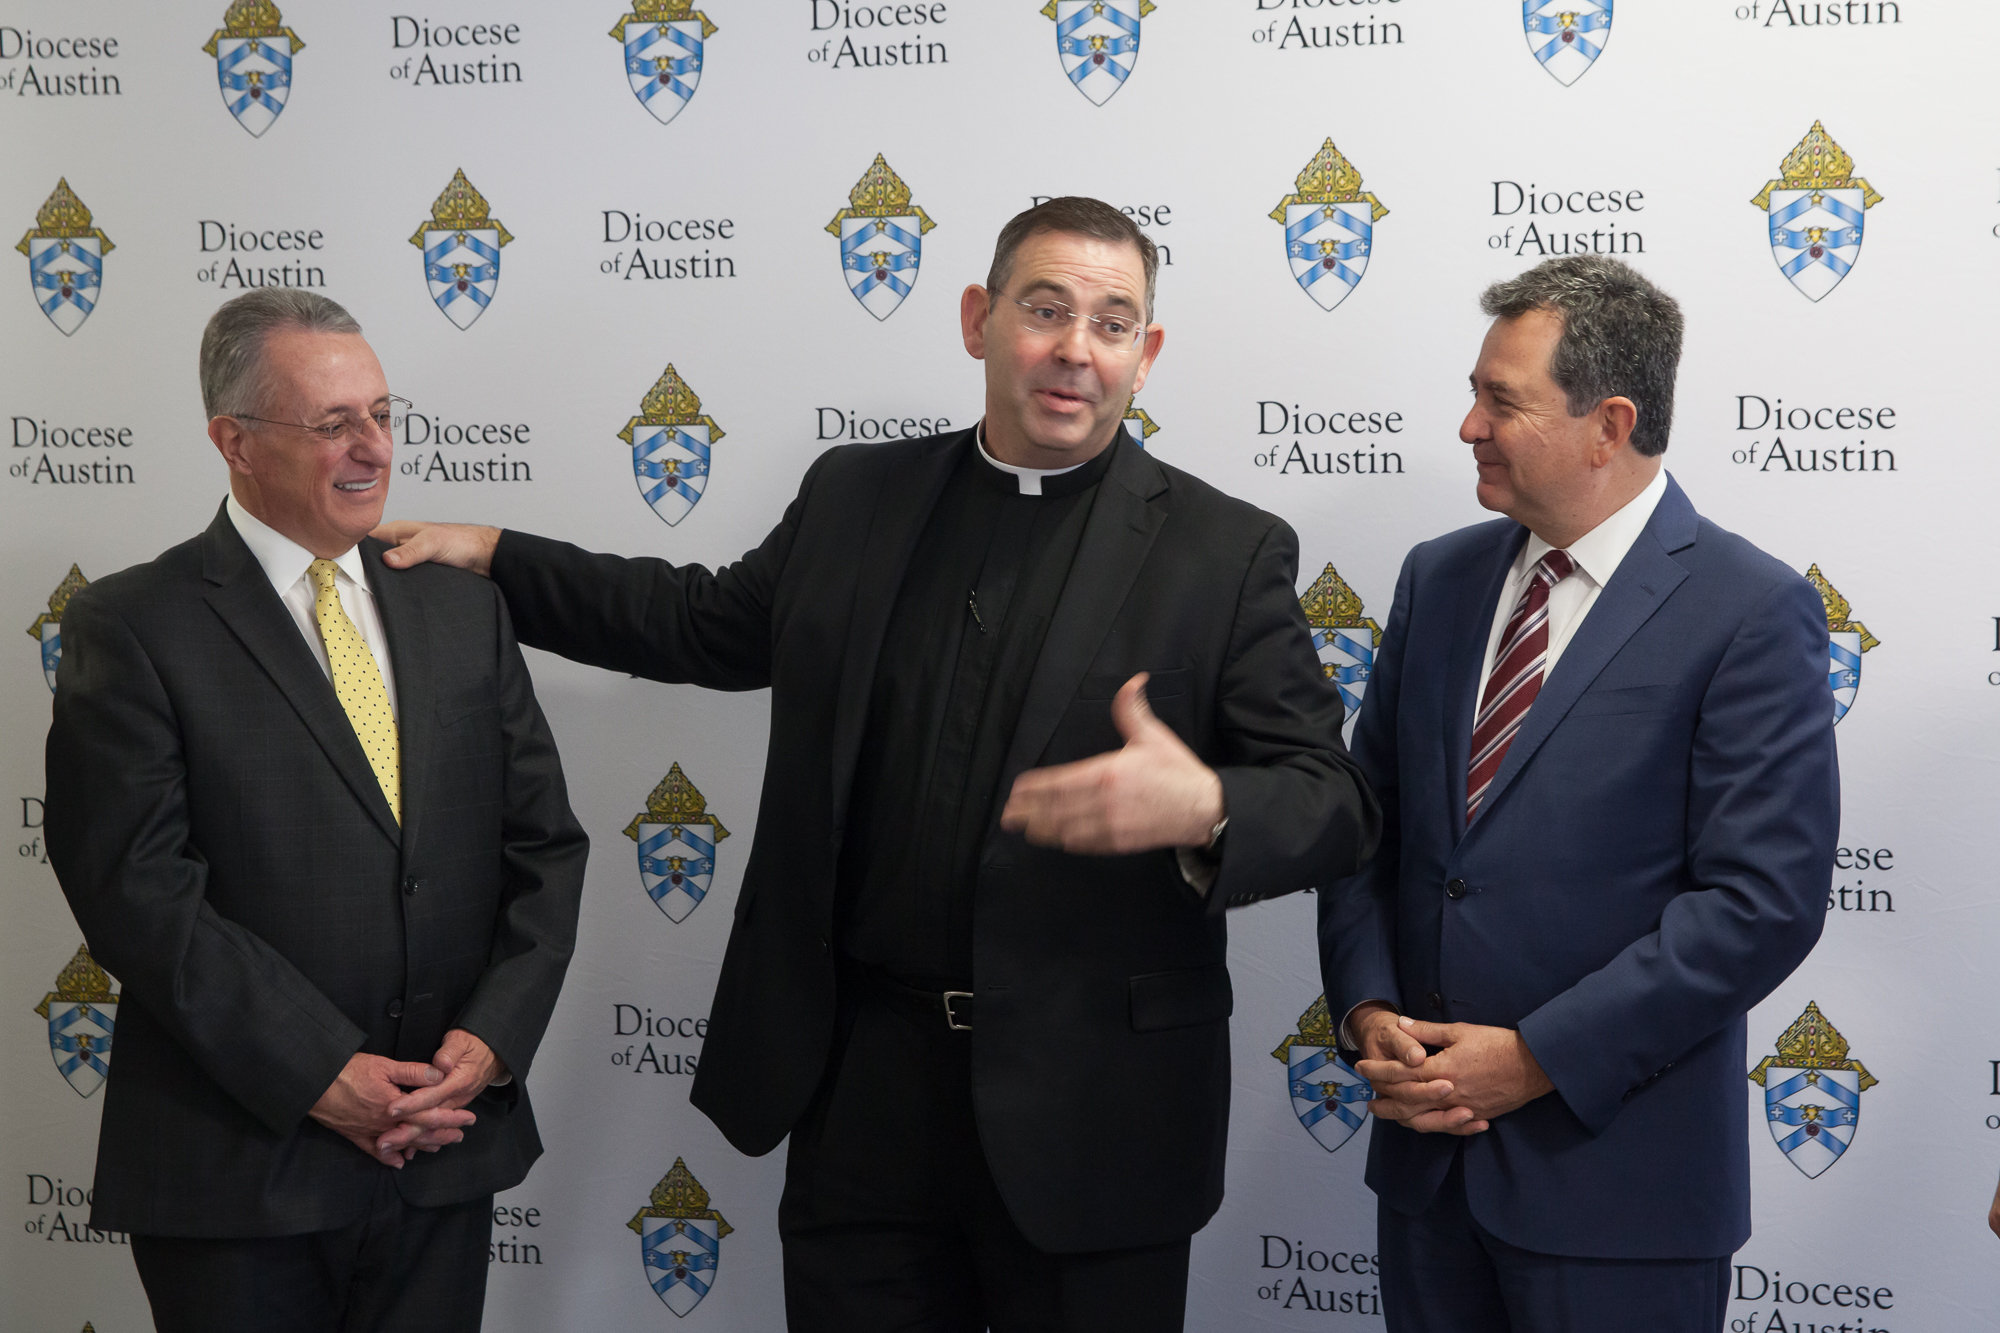 From left to right: Elder Ulisses Soares; Father James Misko, vicar general of the Diocese of Austin; and Elder Adrian Ochoa during a visit at the Diocese of Austin on Oct. 18, 2019.